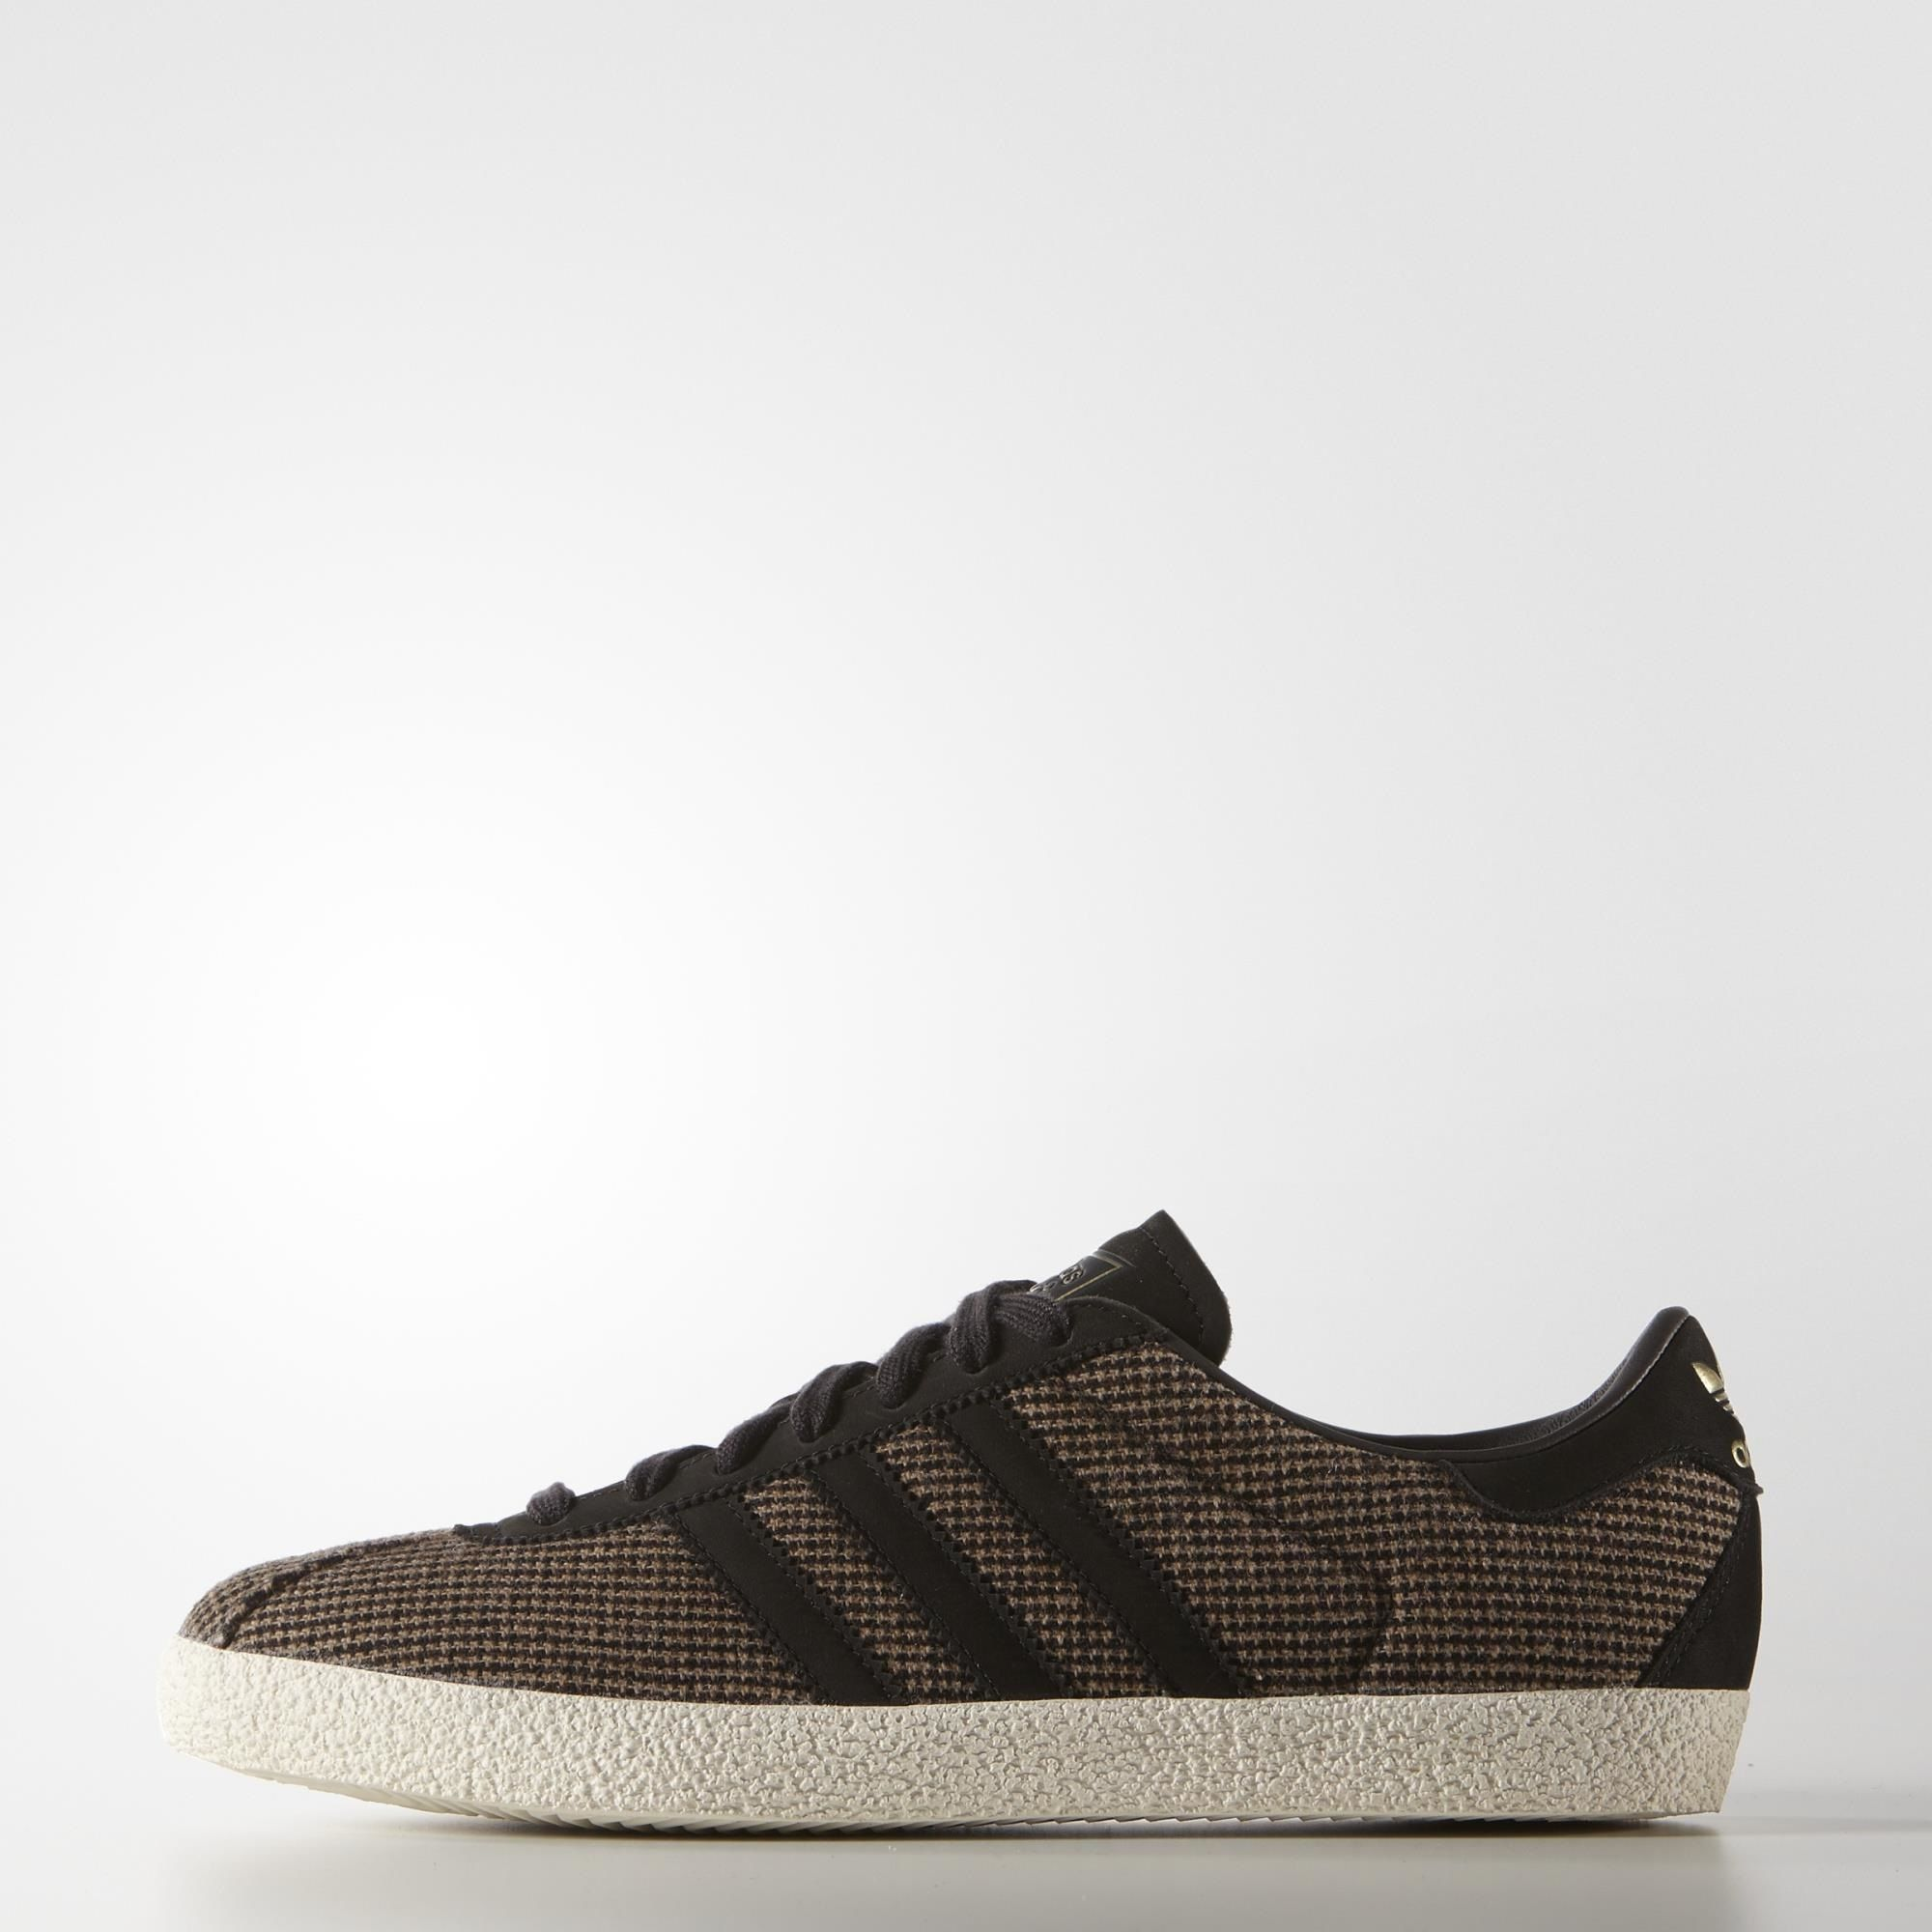 adidas gazelle black mens printable adidas outlet store coupons